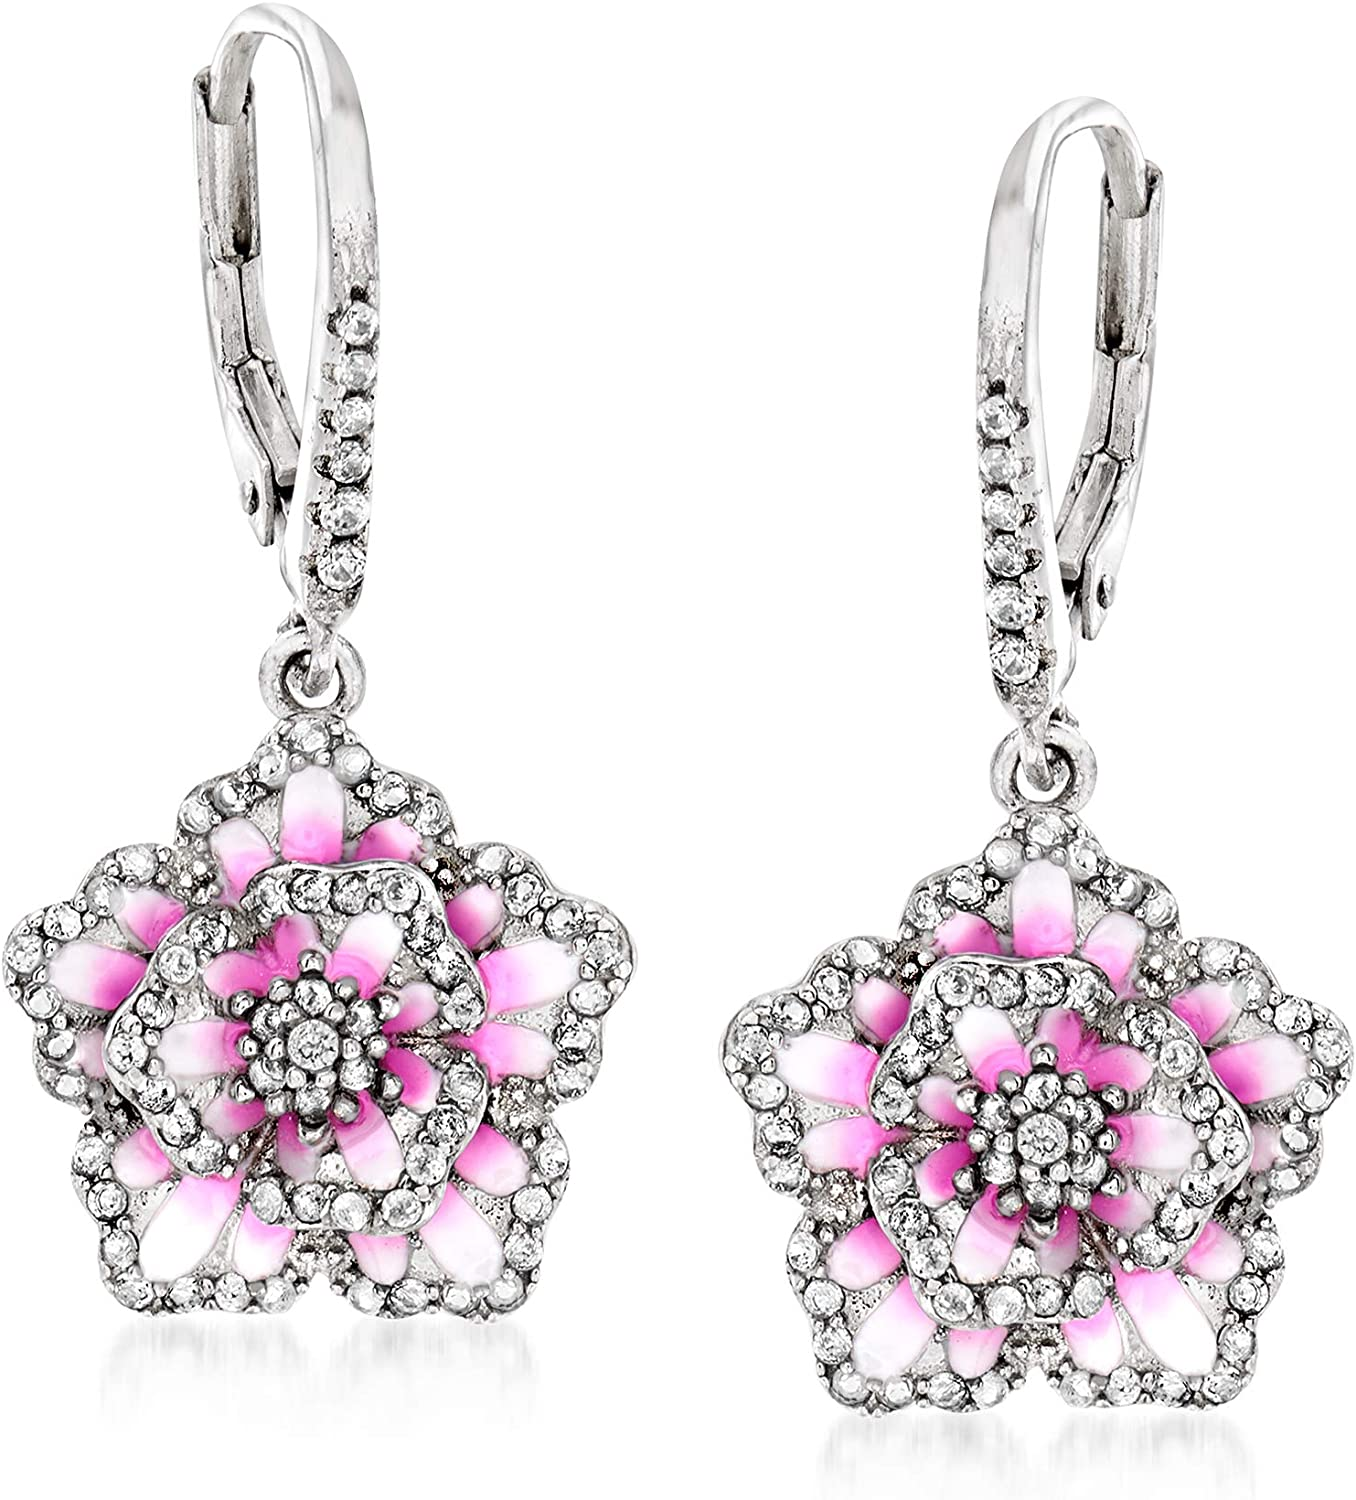 Bombing new work Ross-Simons 0.80 ct. t.w. White Topaz Multicolored Super beauty product restock quality top and Fl Enamel